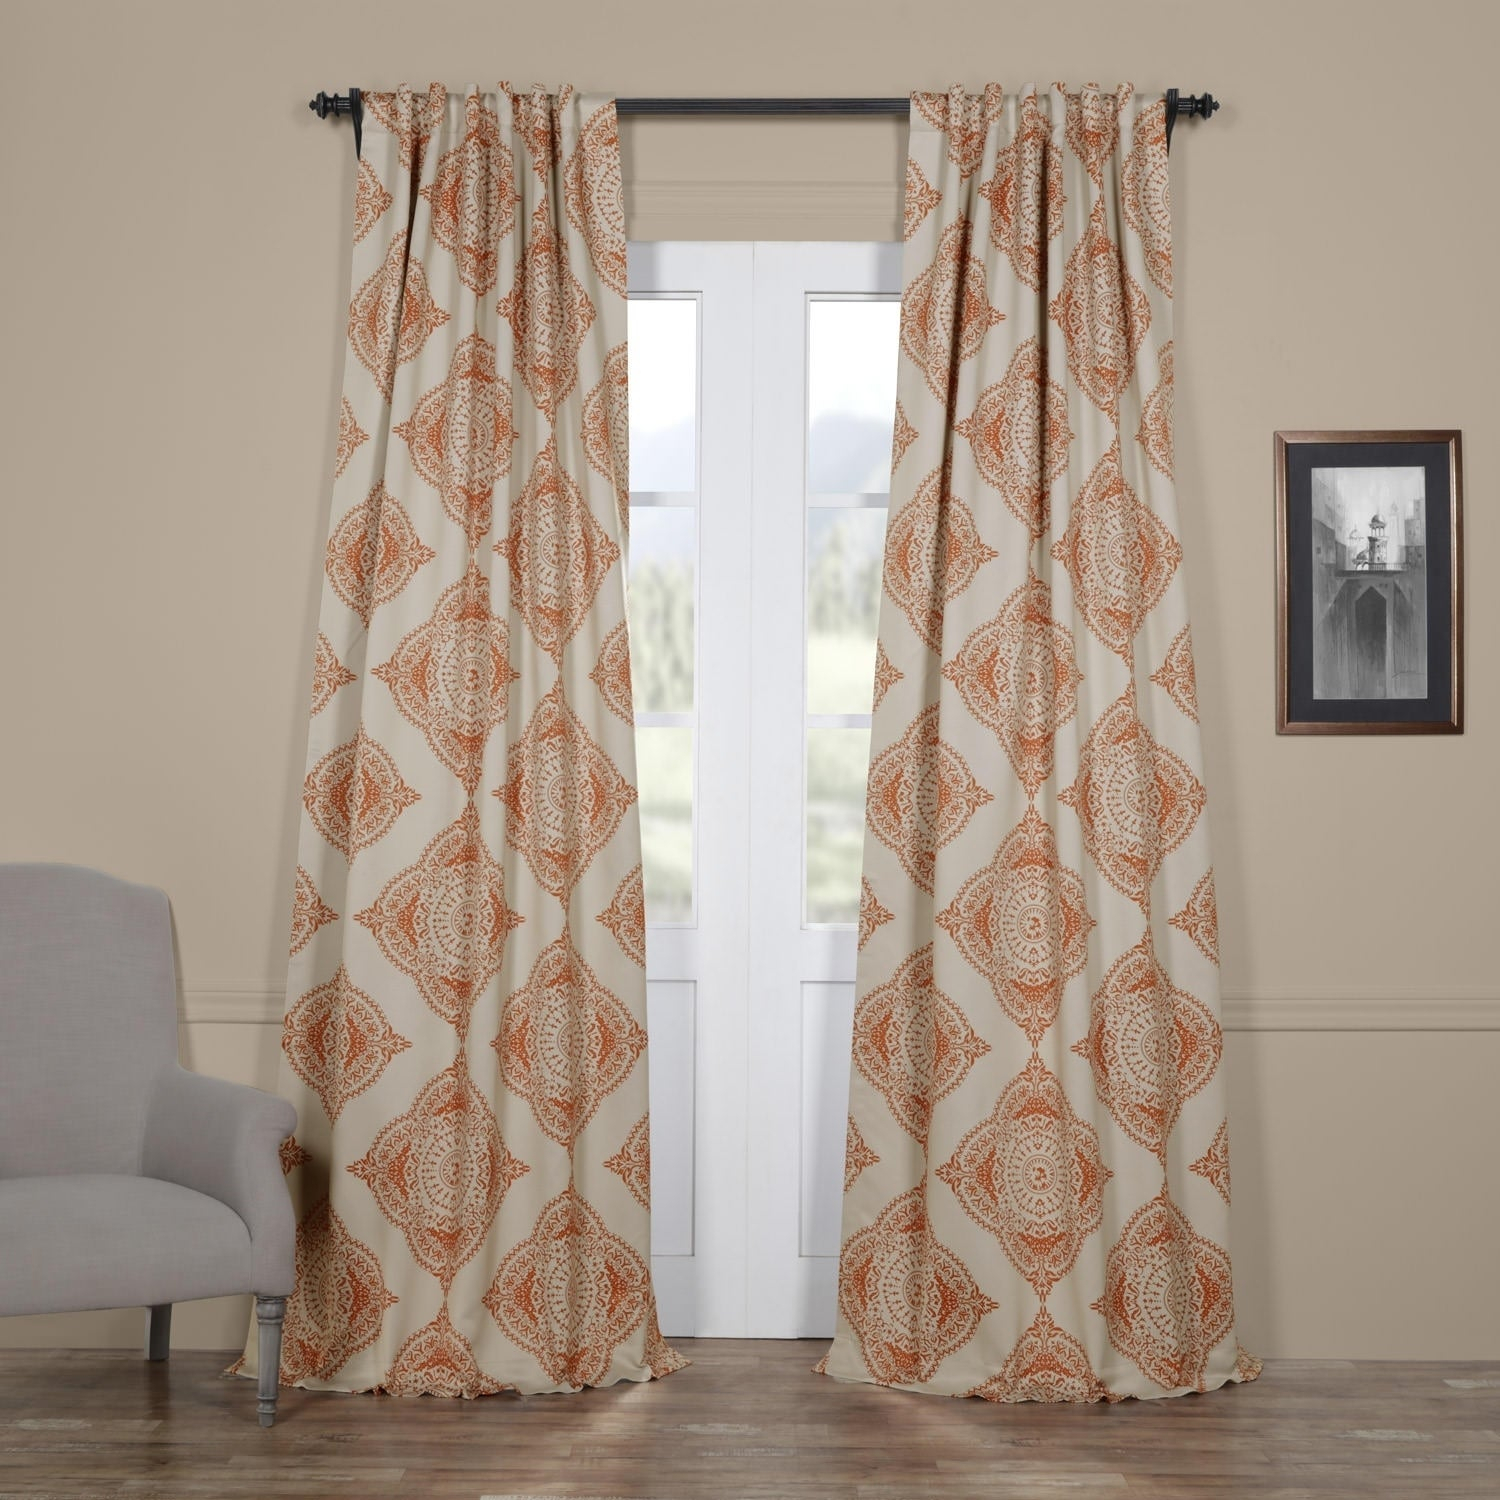 Moroccan Style Thermal Insulated Blackout Curtain Panel Pair With Regard To Insulated Thermal Blackout Curtain Panel Pairs (View 12 of 20)